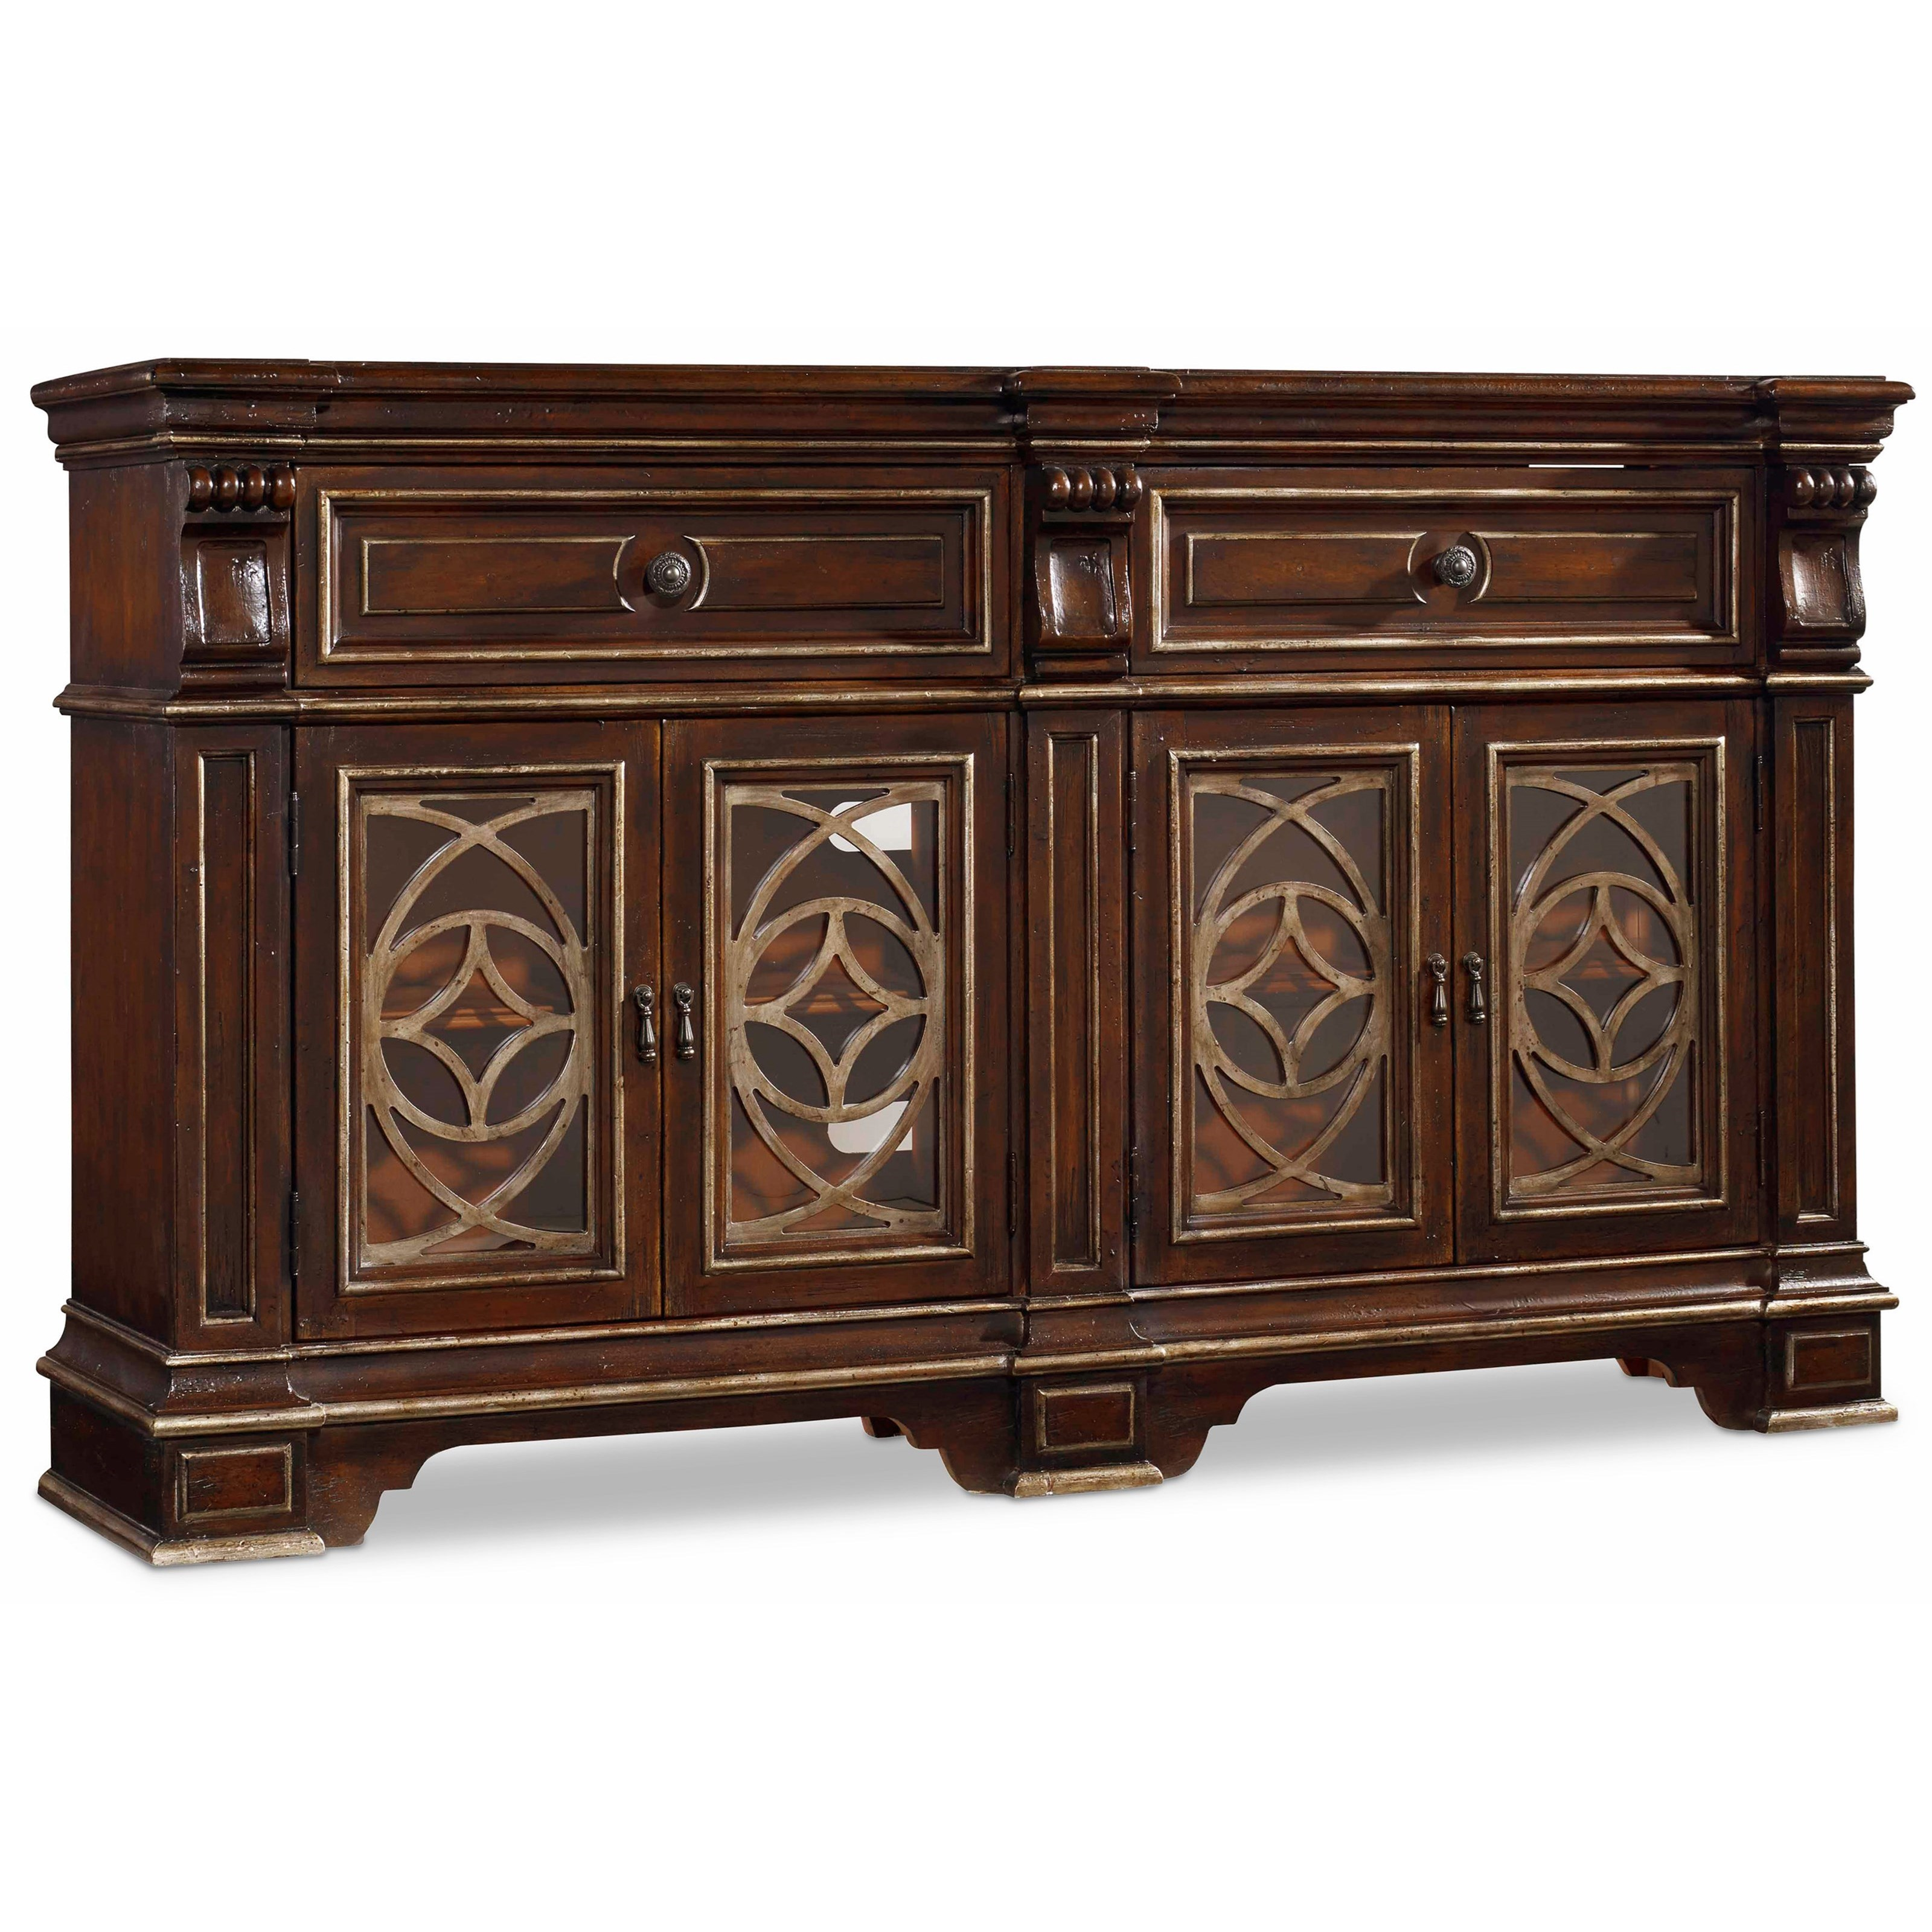 Hooker Furniture Living Room Accents Traditional Chest - Item Number: 5469-85001